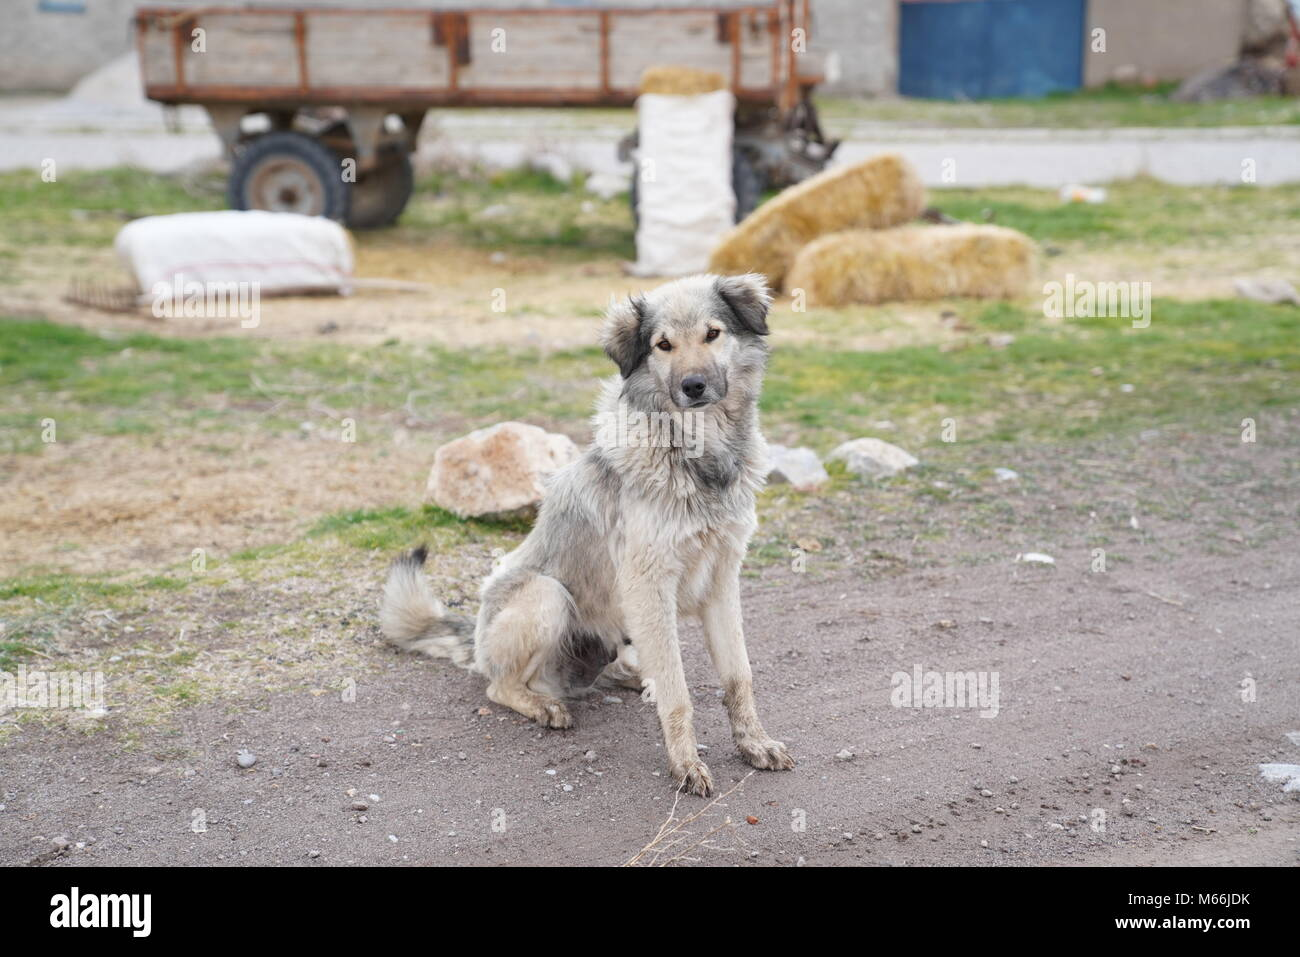 A grey hairy beautiful dog just in front of a  tractor trailer and country houses - Stock Image